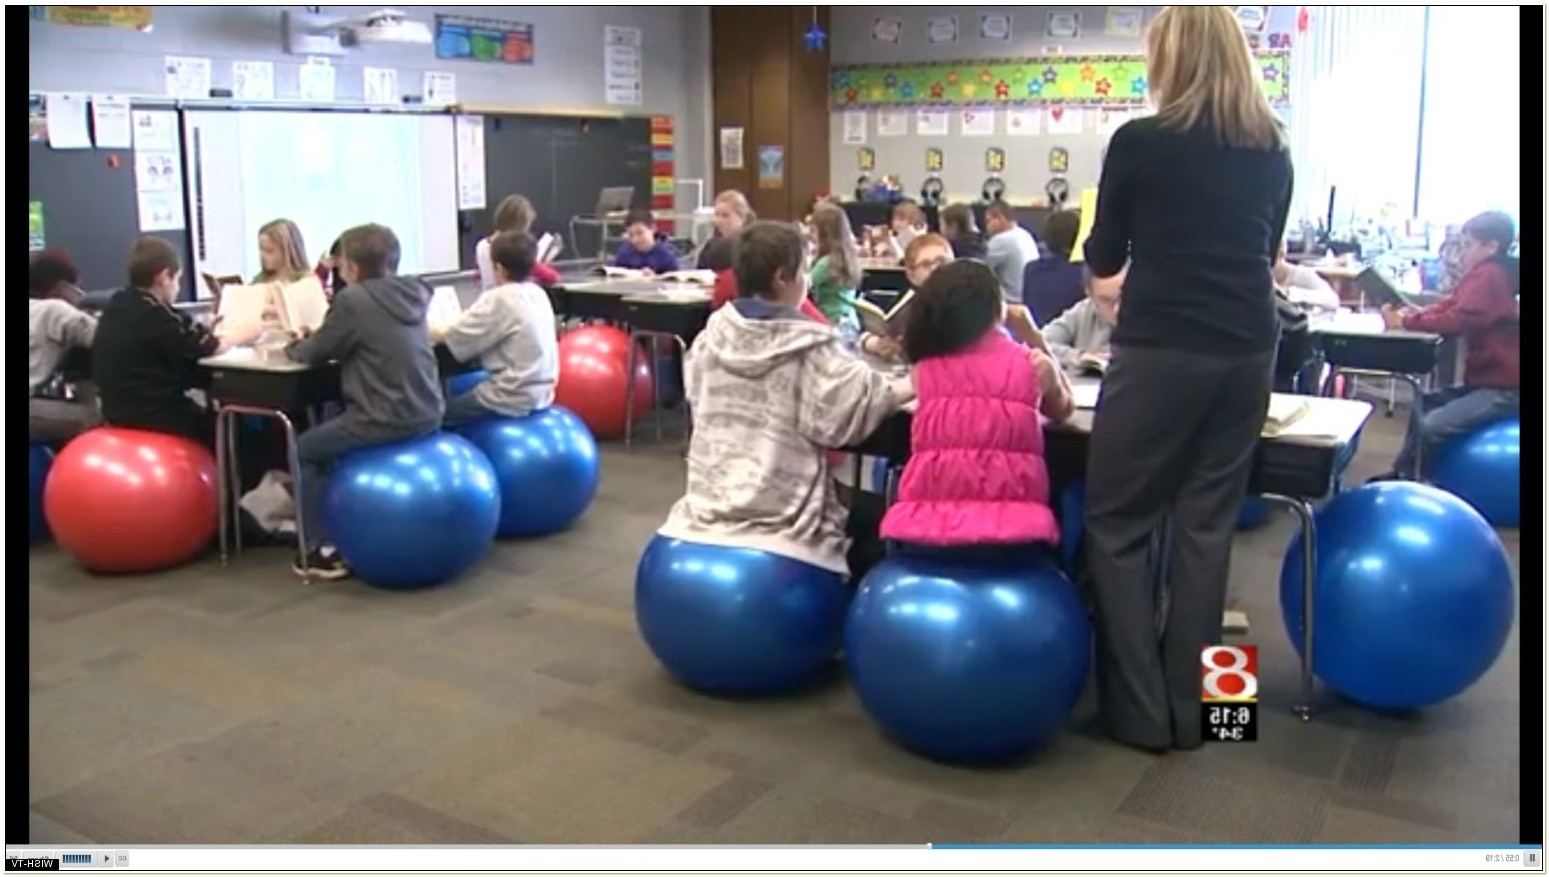 Using Exercise Balls As Chairs